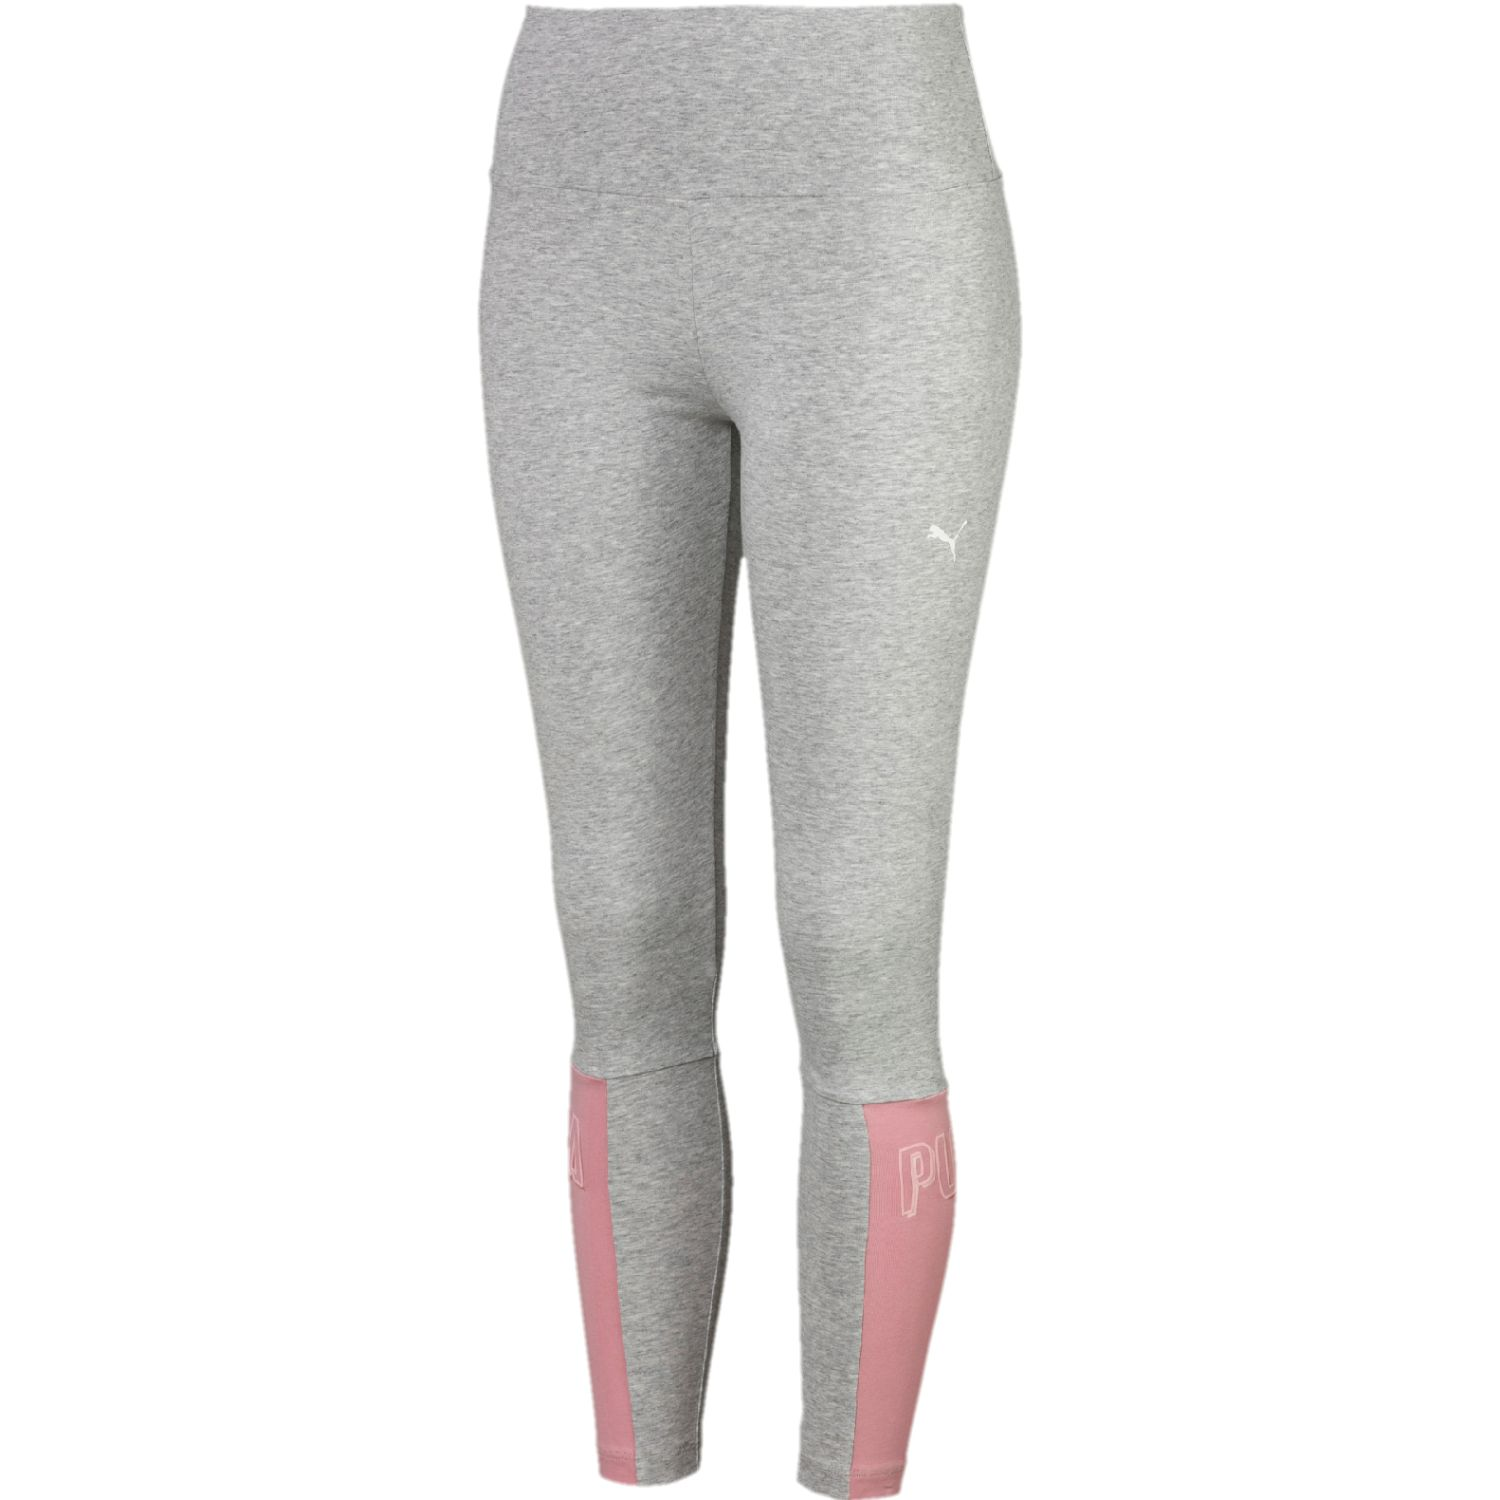 Puma athletics 7'8 graphic leggings Gris / rosado Leggings Deportivos